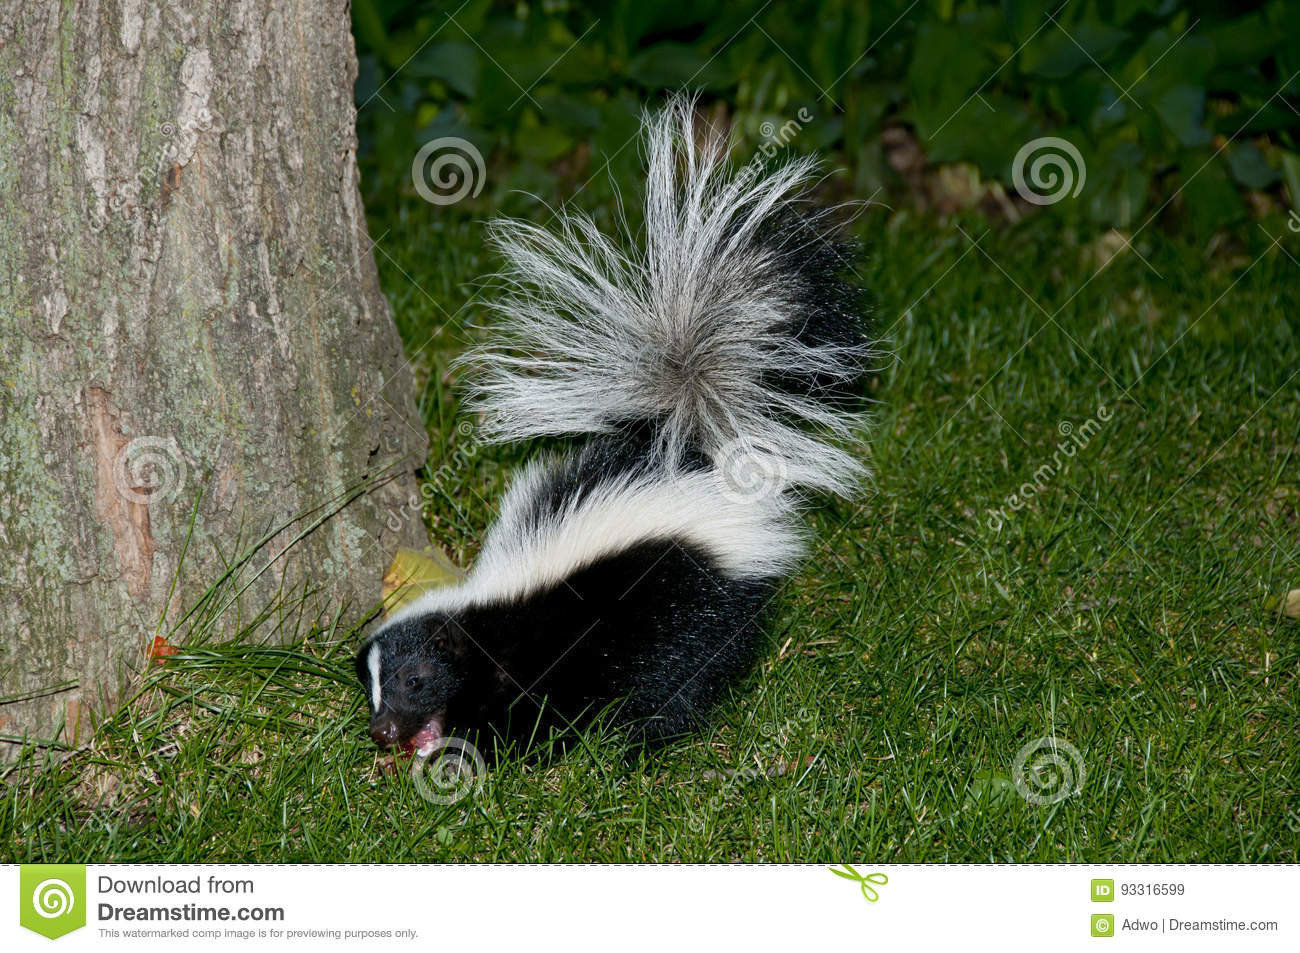 Skunk In Backyard skunk in backyard grass stock image. image of night, animal - 93316599